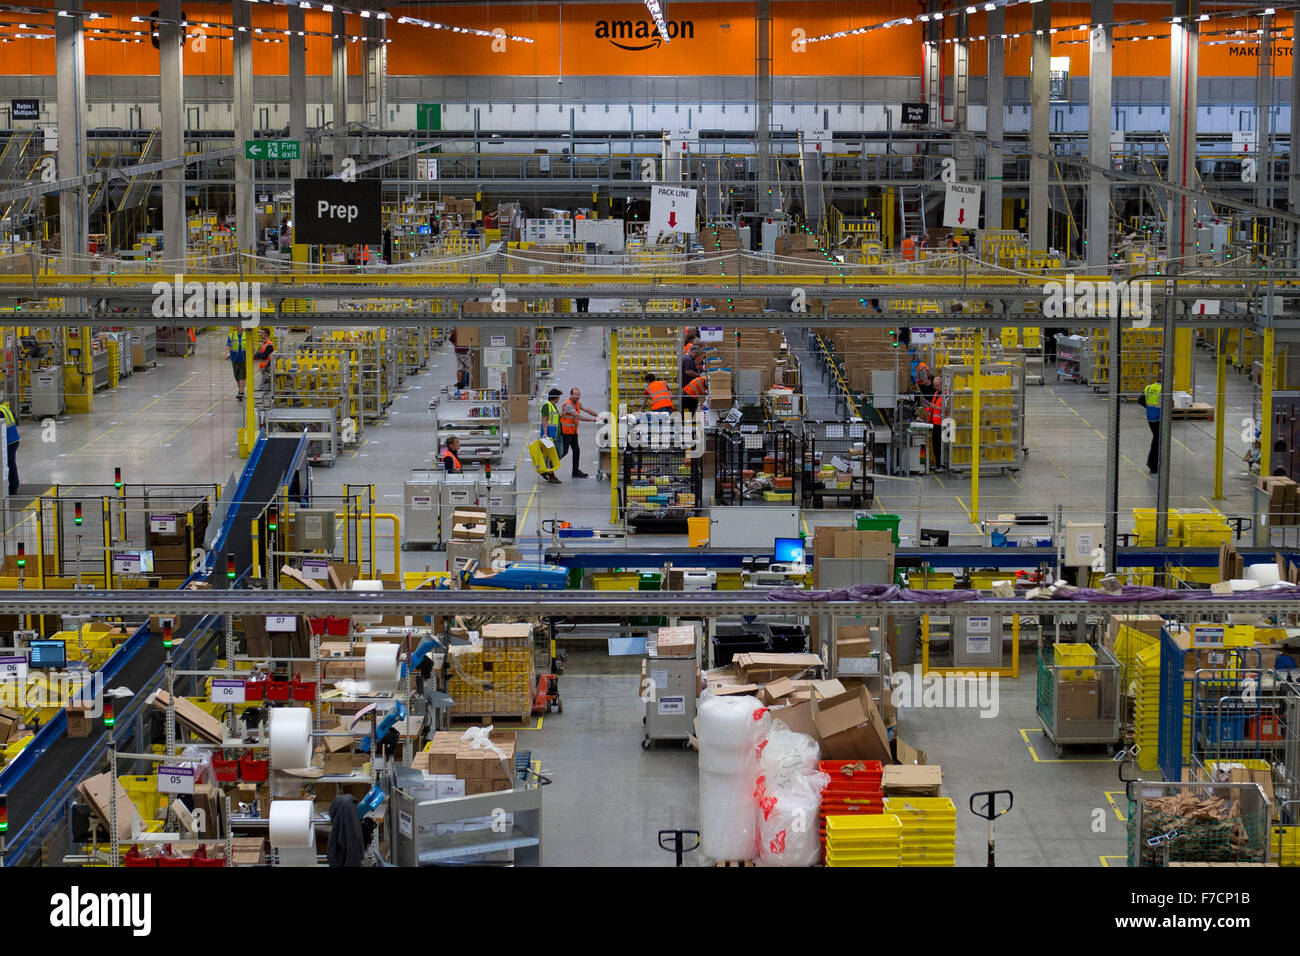 The Amazon warehouse fulfillment centre in Swansea, South Wales. Amazon have hired an number of extra staff for - Stock Image